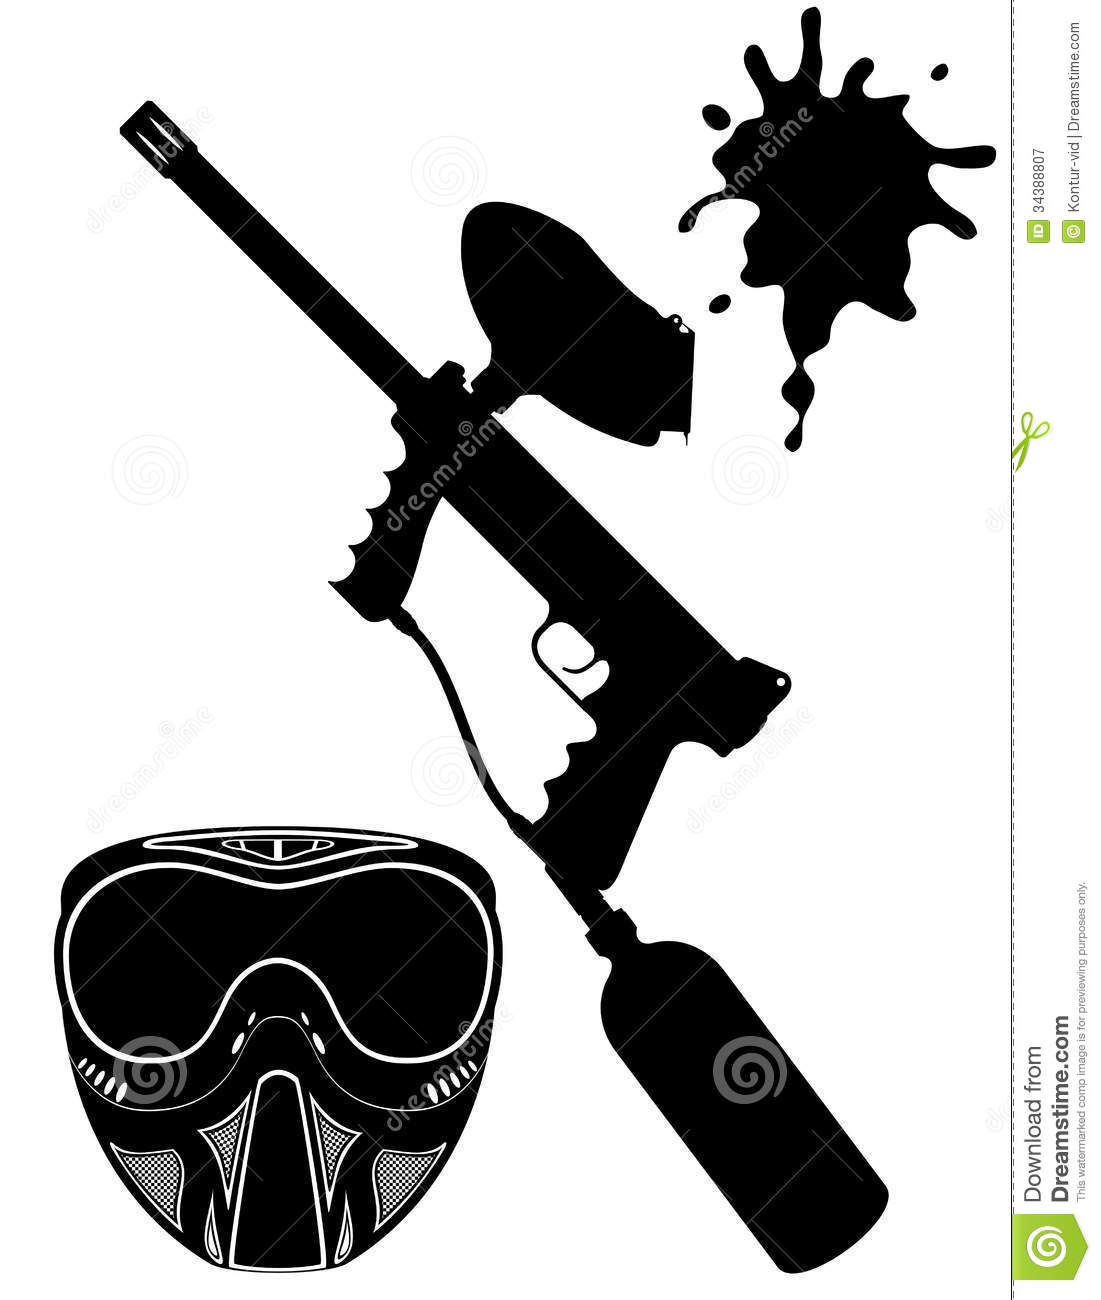 Paintball Vector Clipart #1-Paintball Vector Clipart #1-12